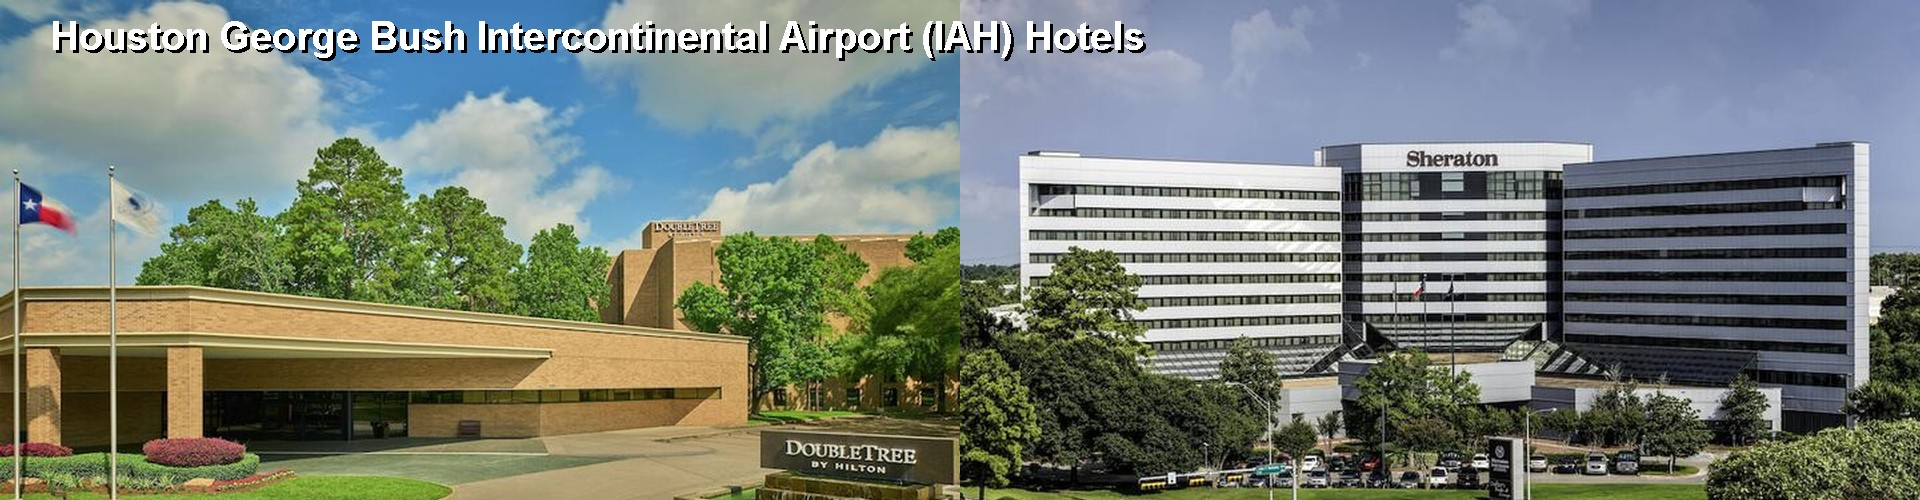 5 Best Hotels near Houston George Bush Intercontinental Airport (IAH)